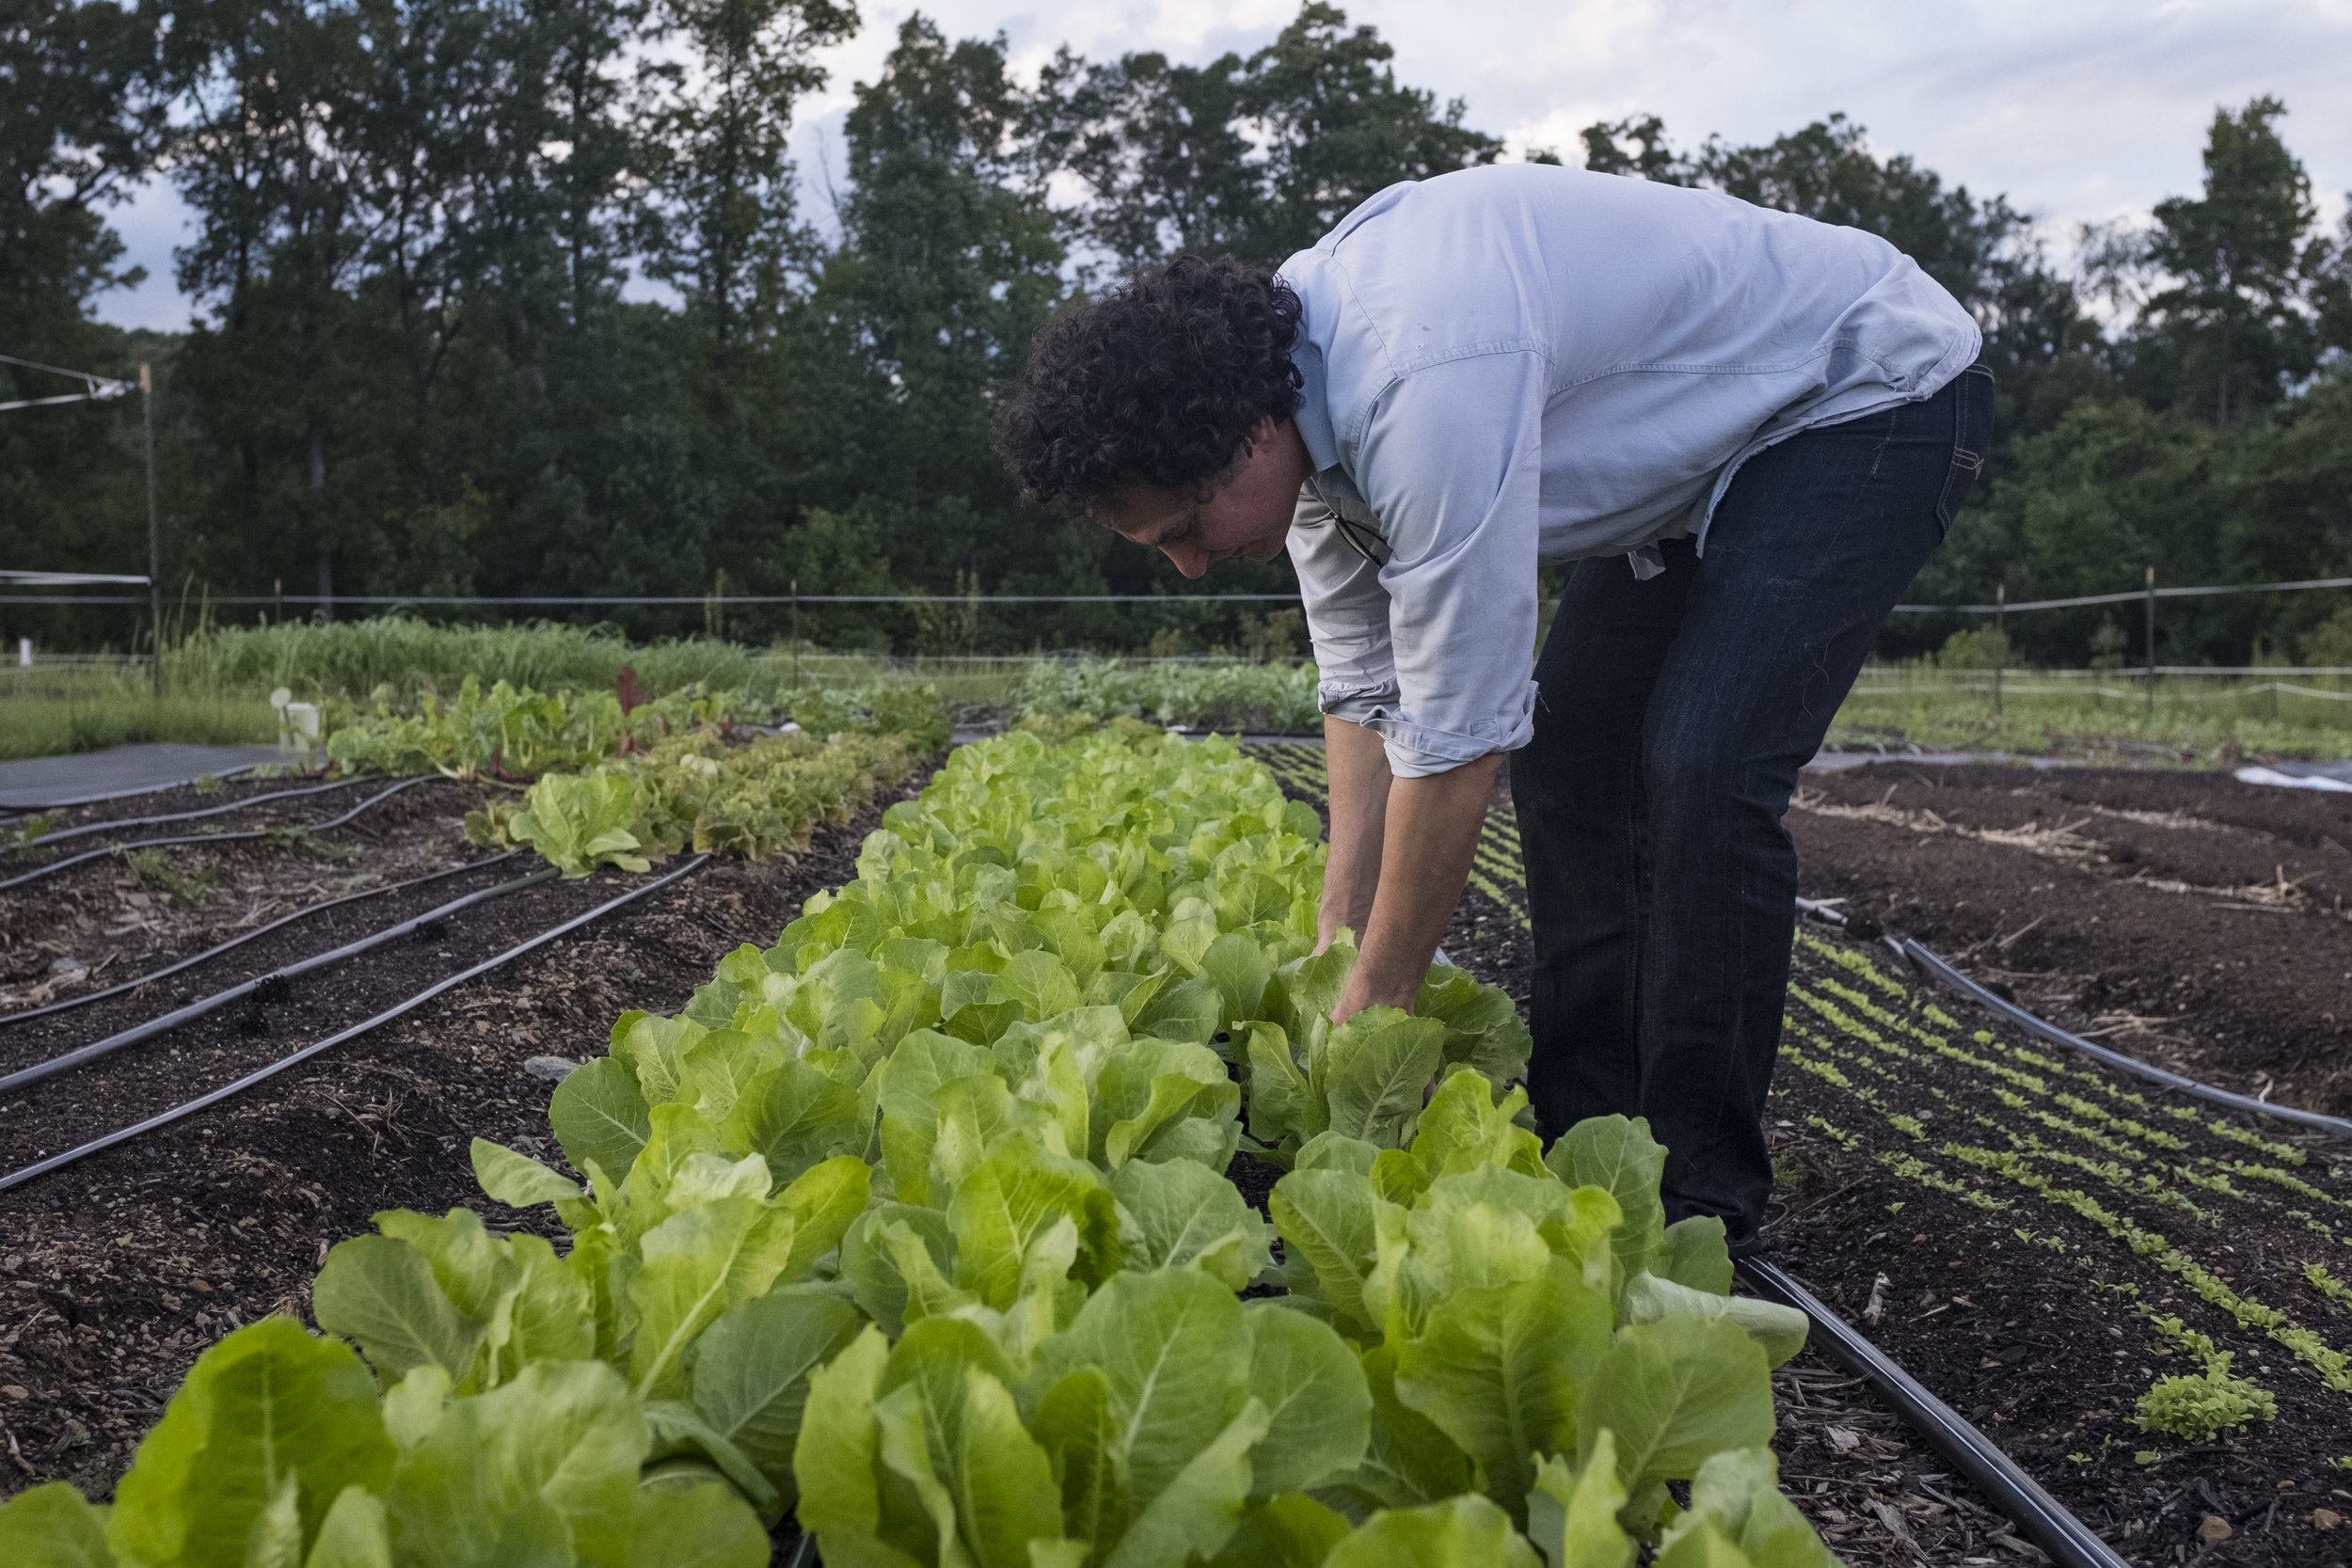 Roberto Copa Matos harvests lettuce from his farm, Terra Secca, in Hillsborough, NC. His goal is to grow the farm to the point where almost all of the food products he uses at his restaurant come from his farm.